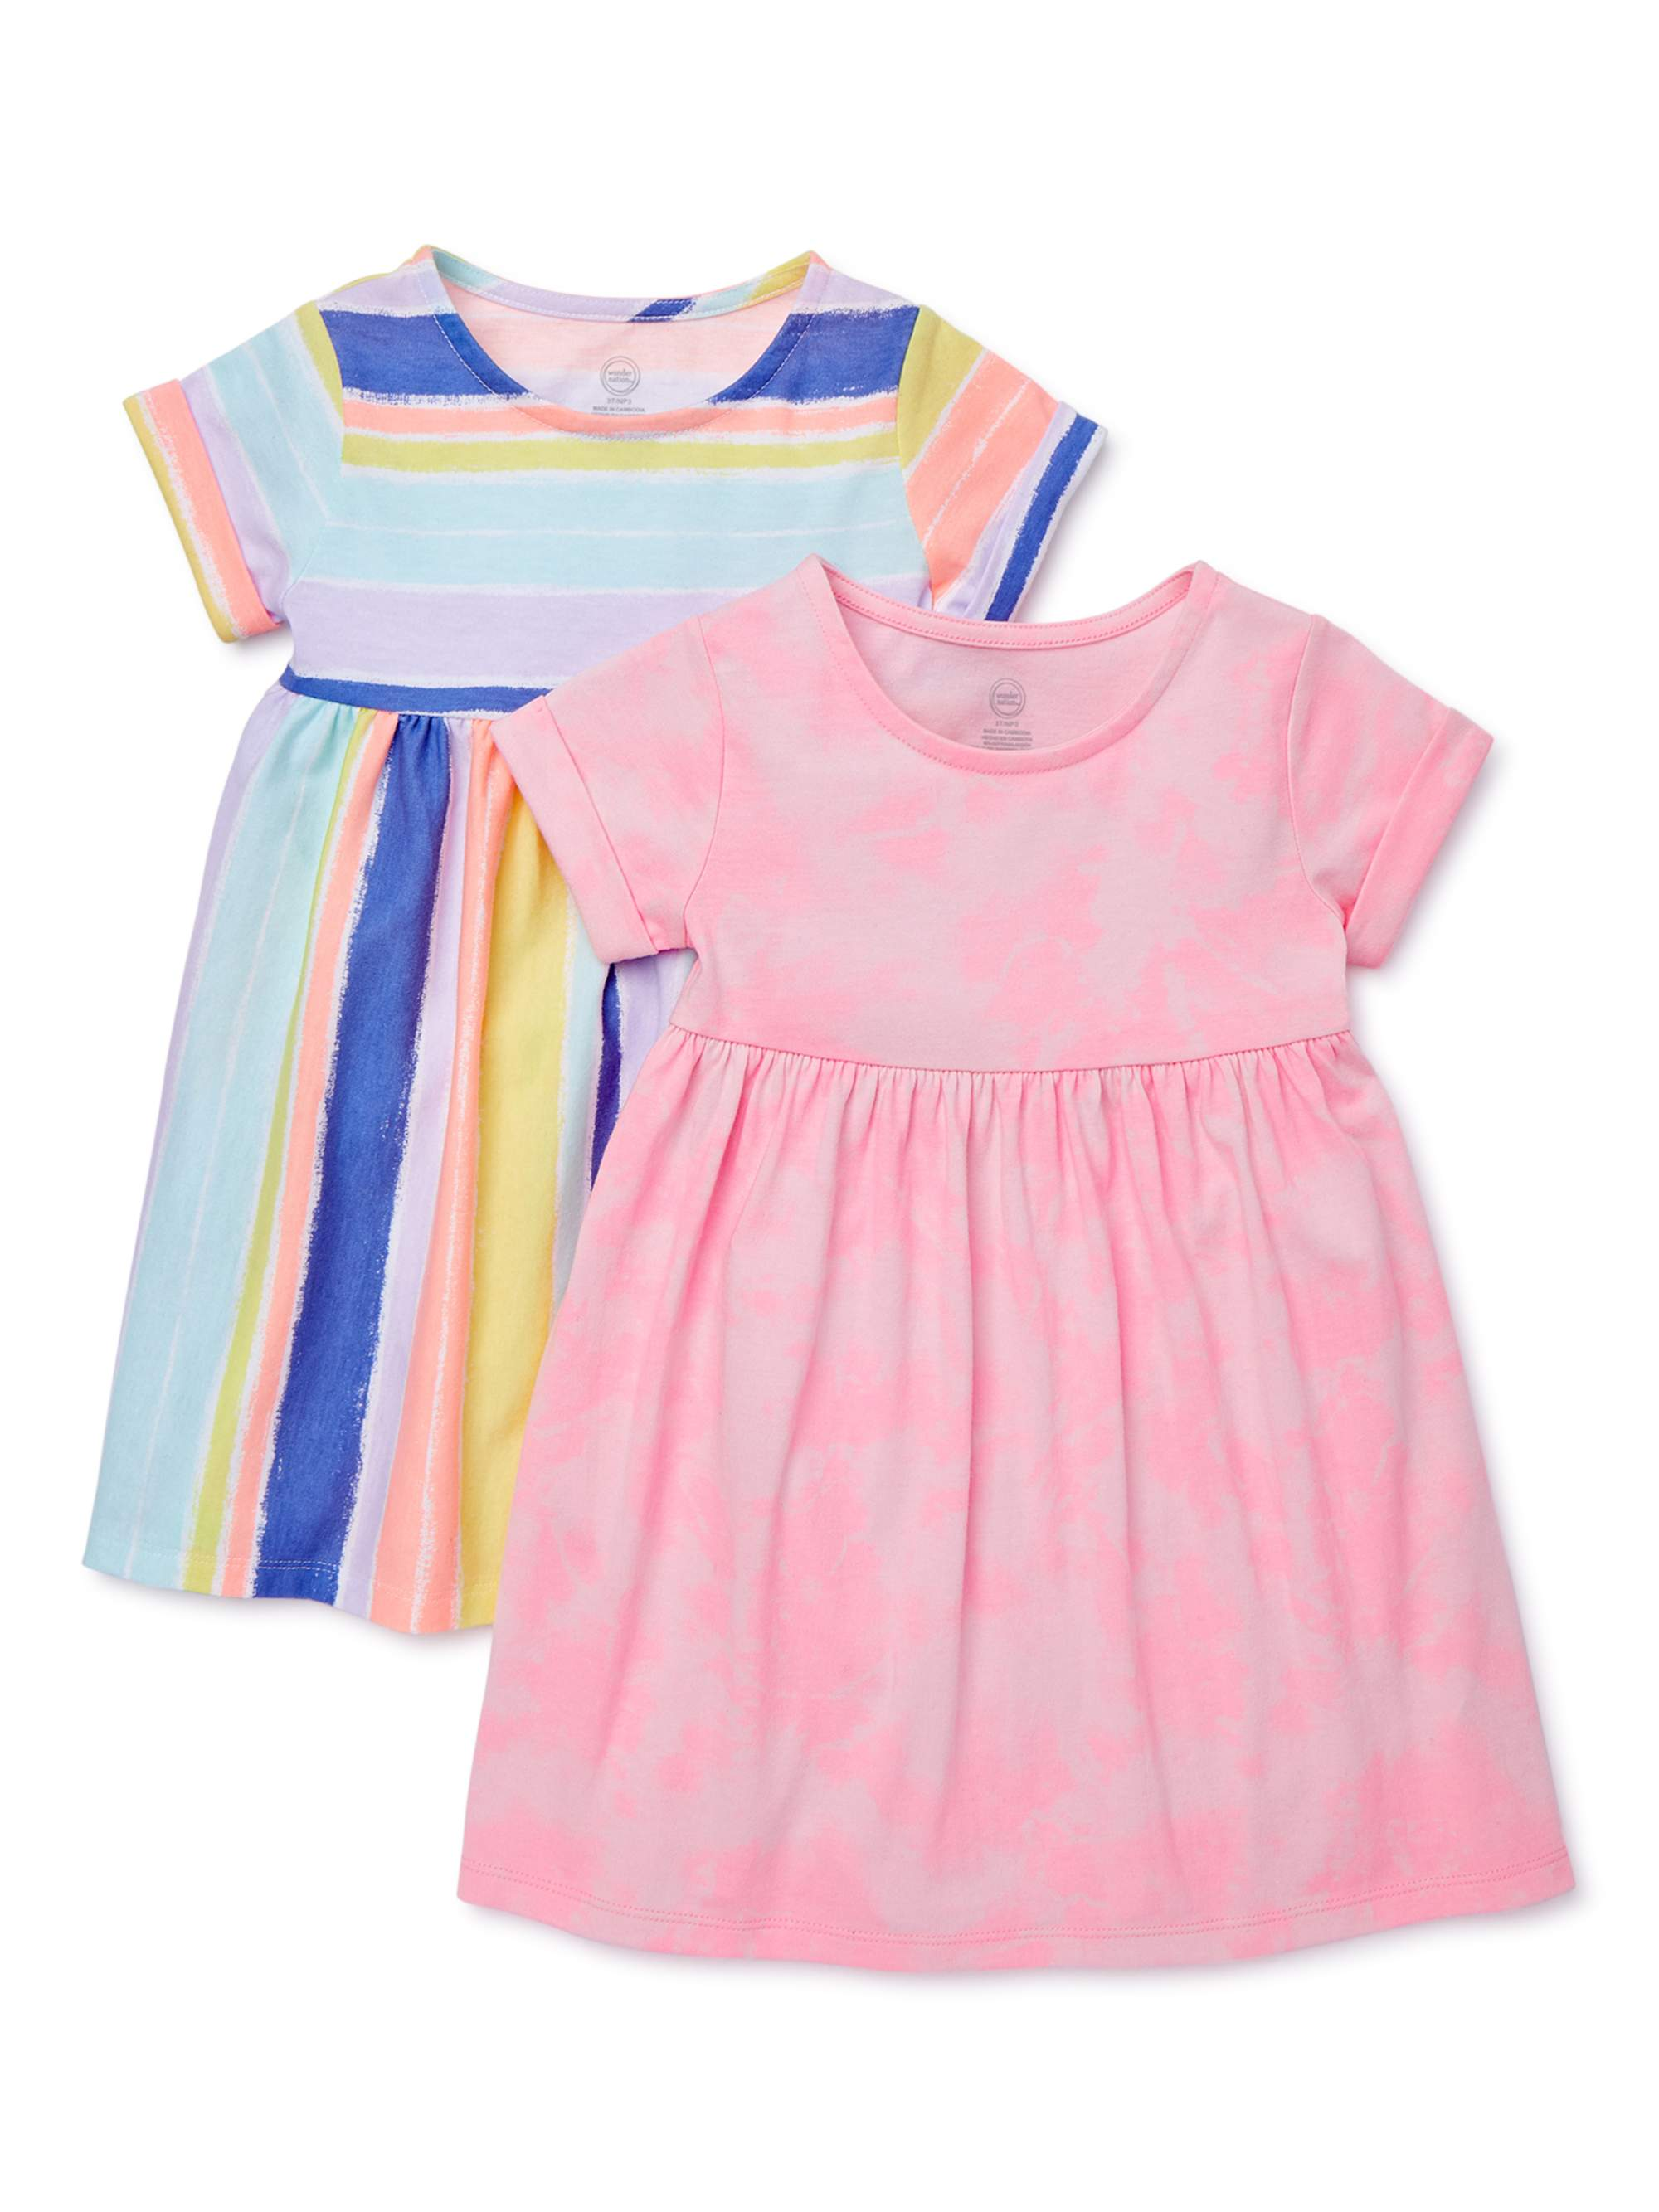 Girls School Summer Dress Red Check Age 11 2 Pack